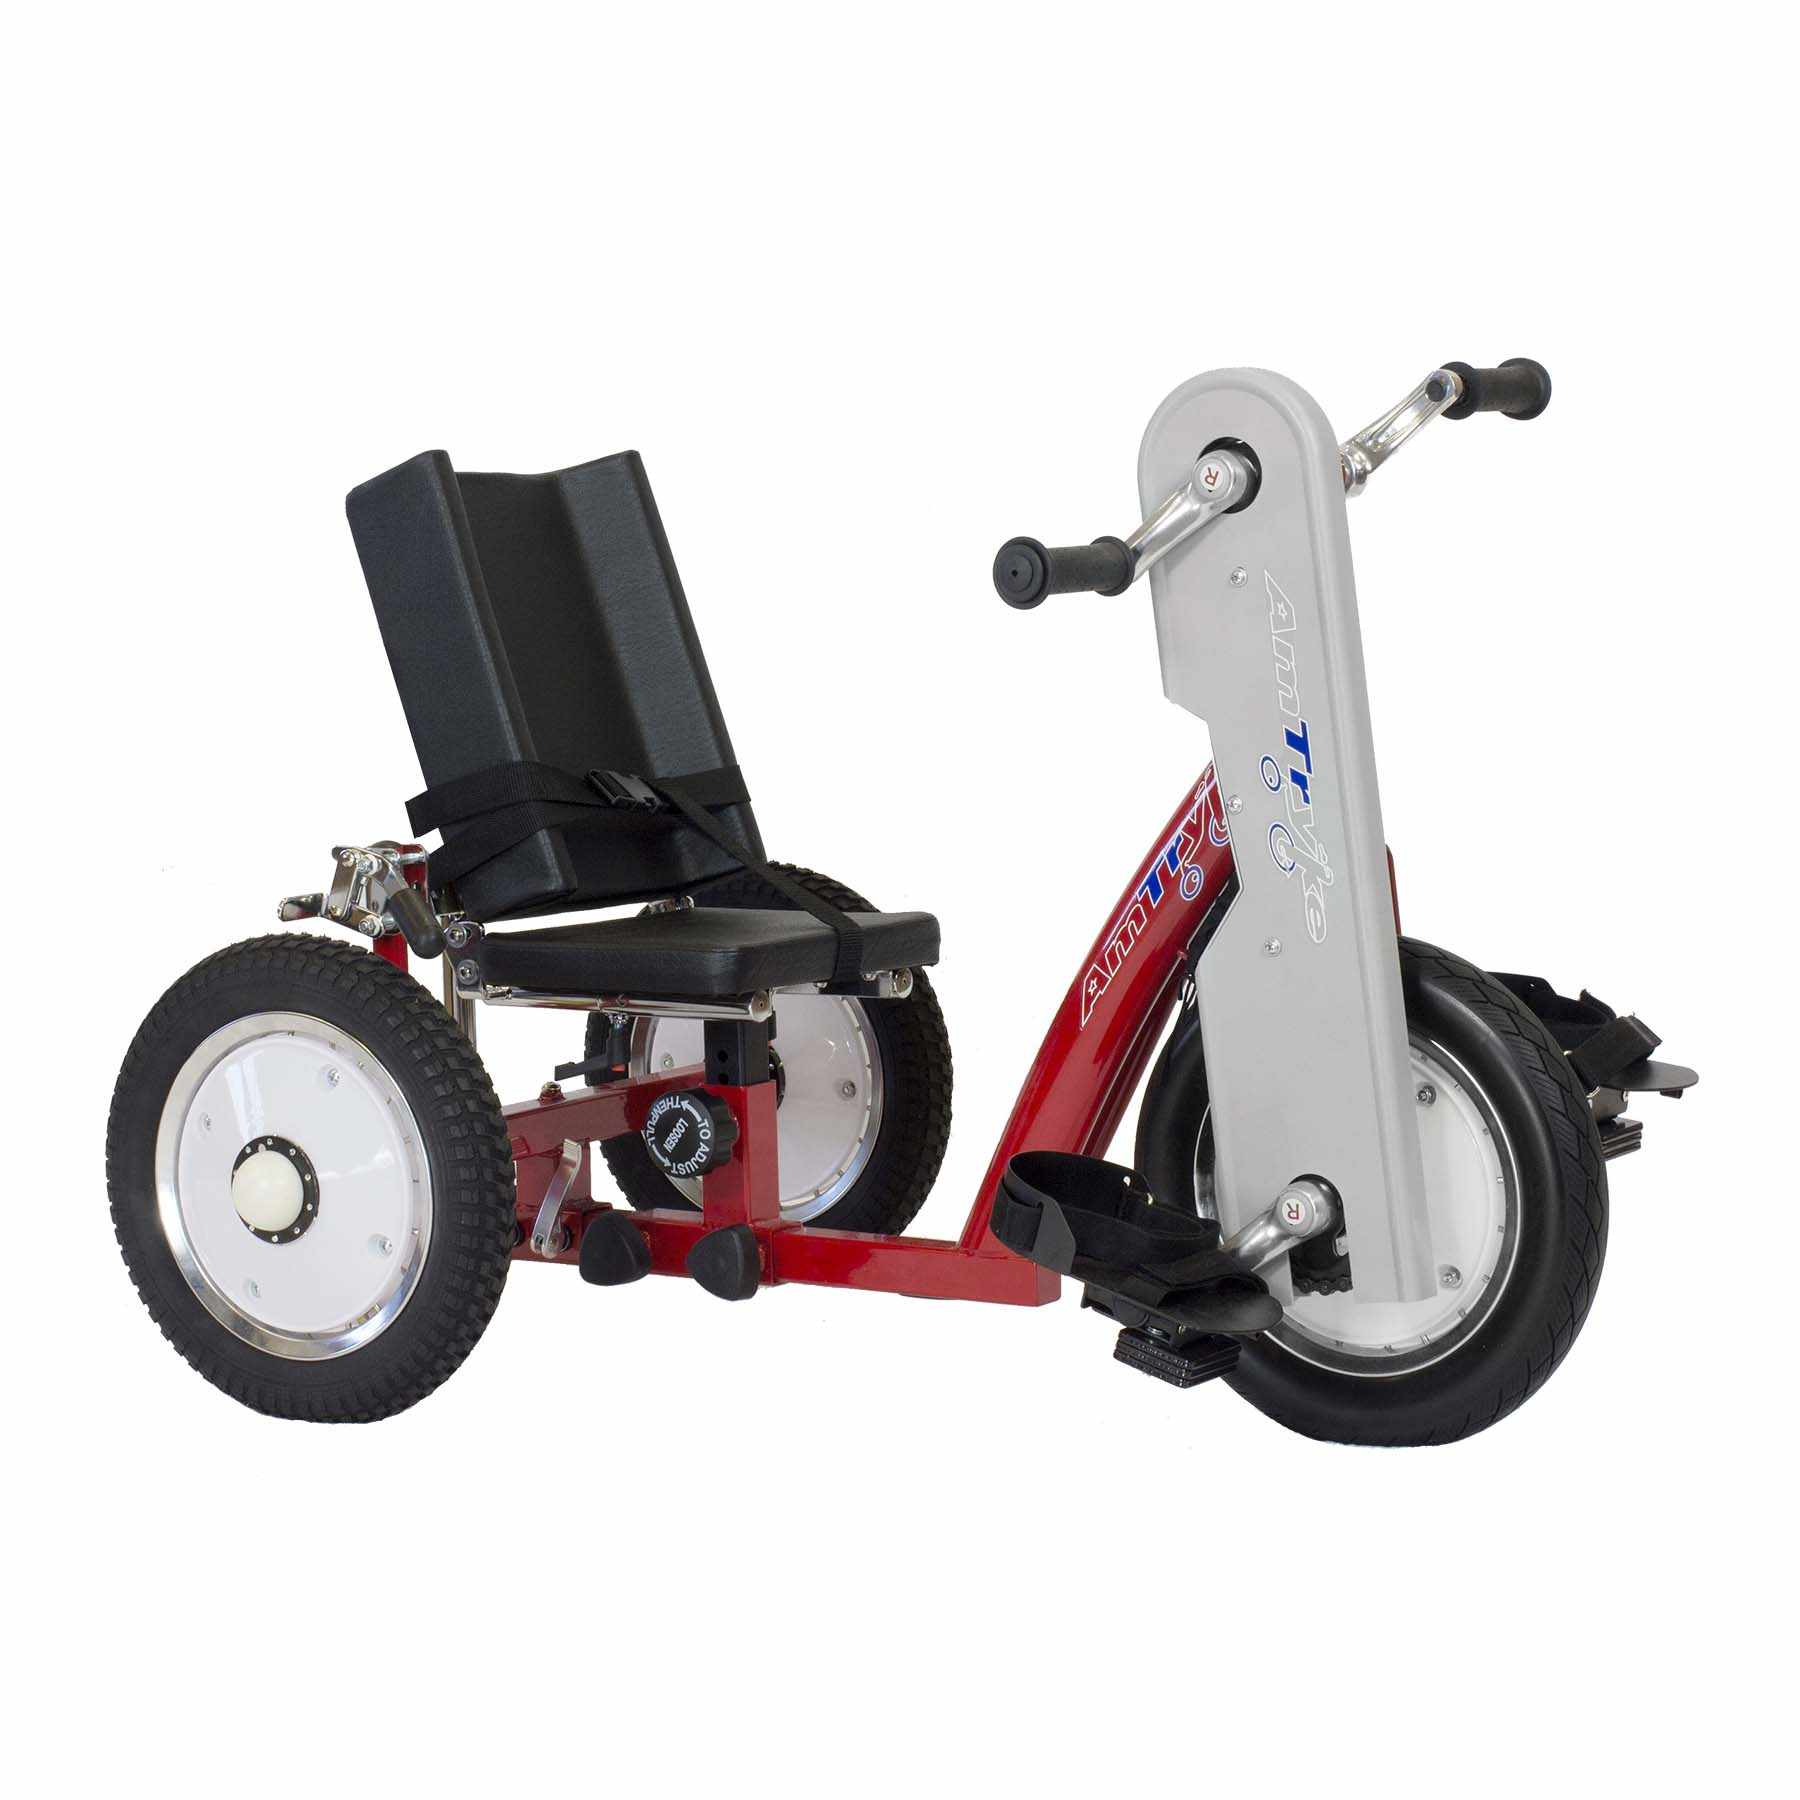 Amtryke AM-10 Hand/Foot Tricycle With Snappy Seat | Amtryke Tricycles